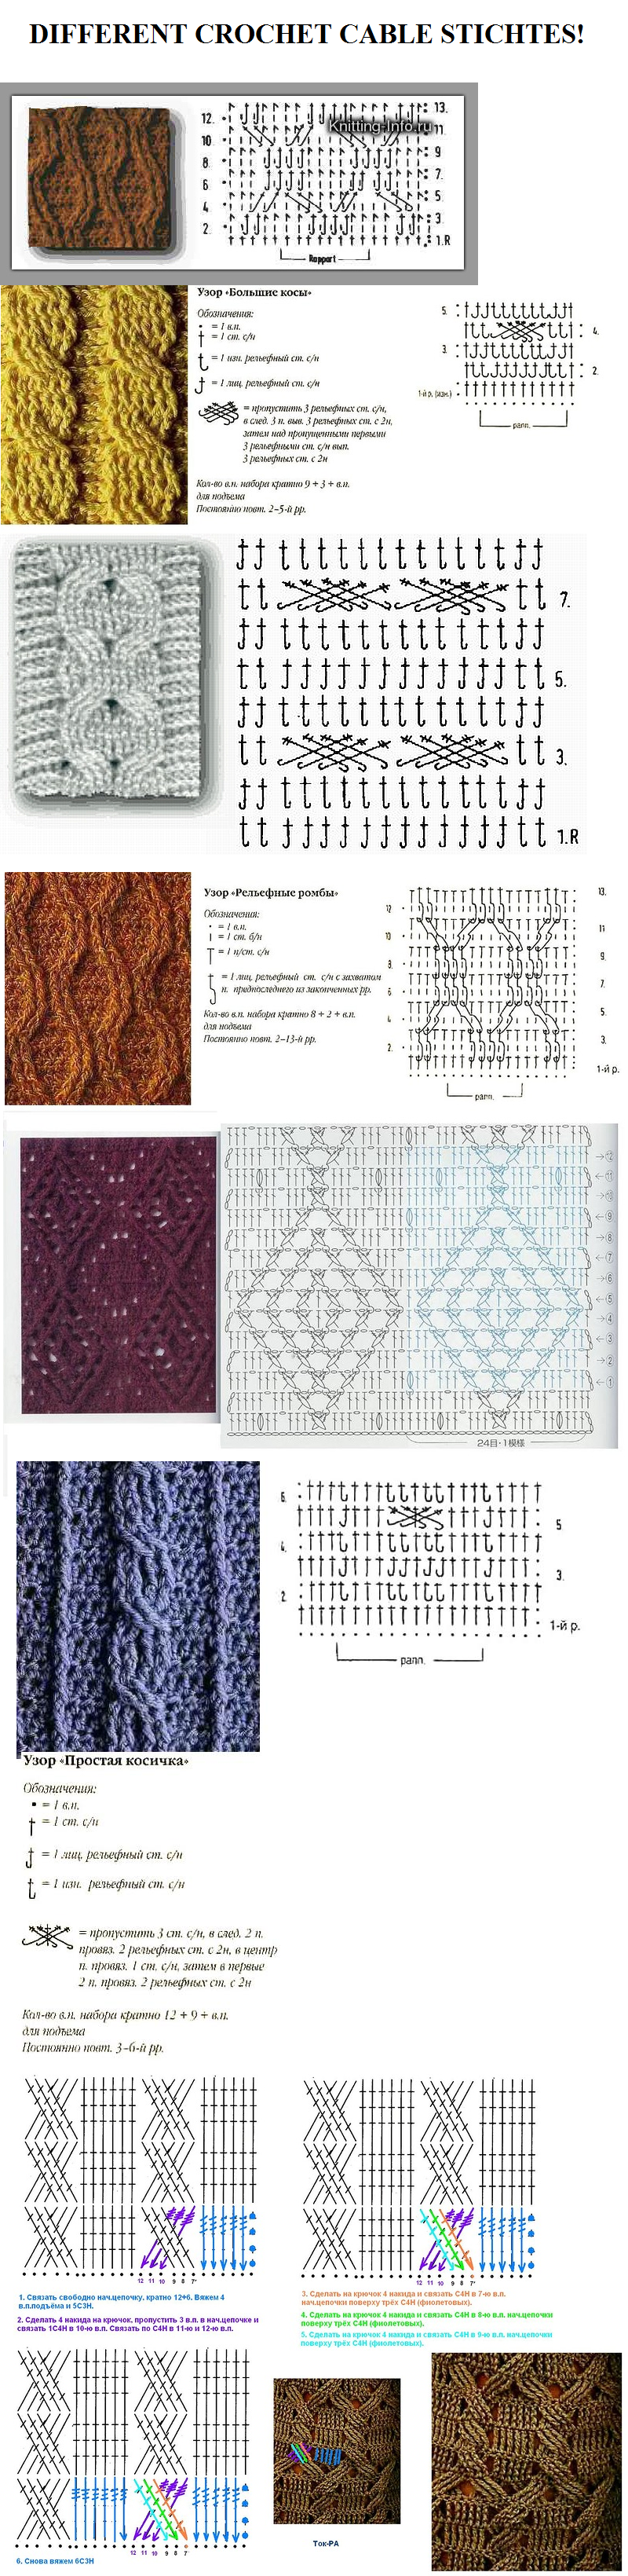 Crochet Cable Stitch Instructions : Crochet Stitches and Techniques on Pinterest Stitches ...